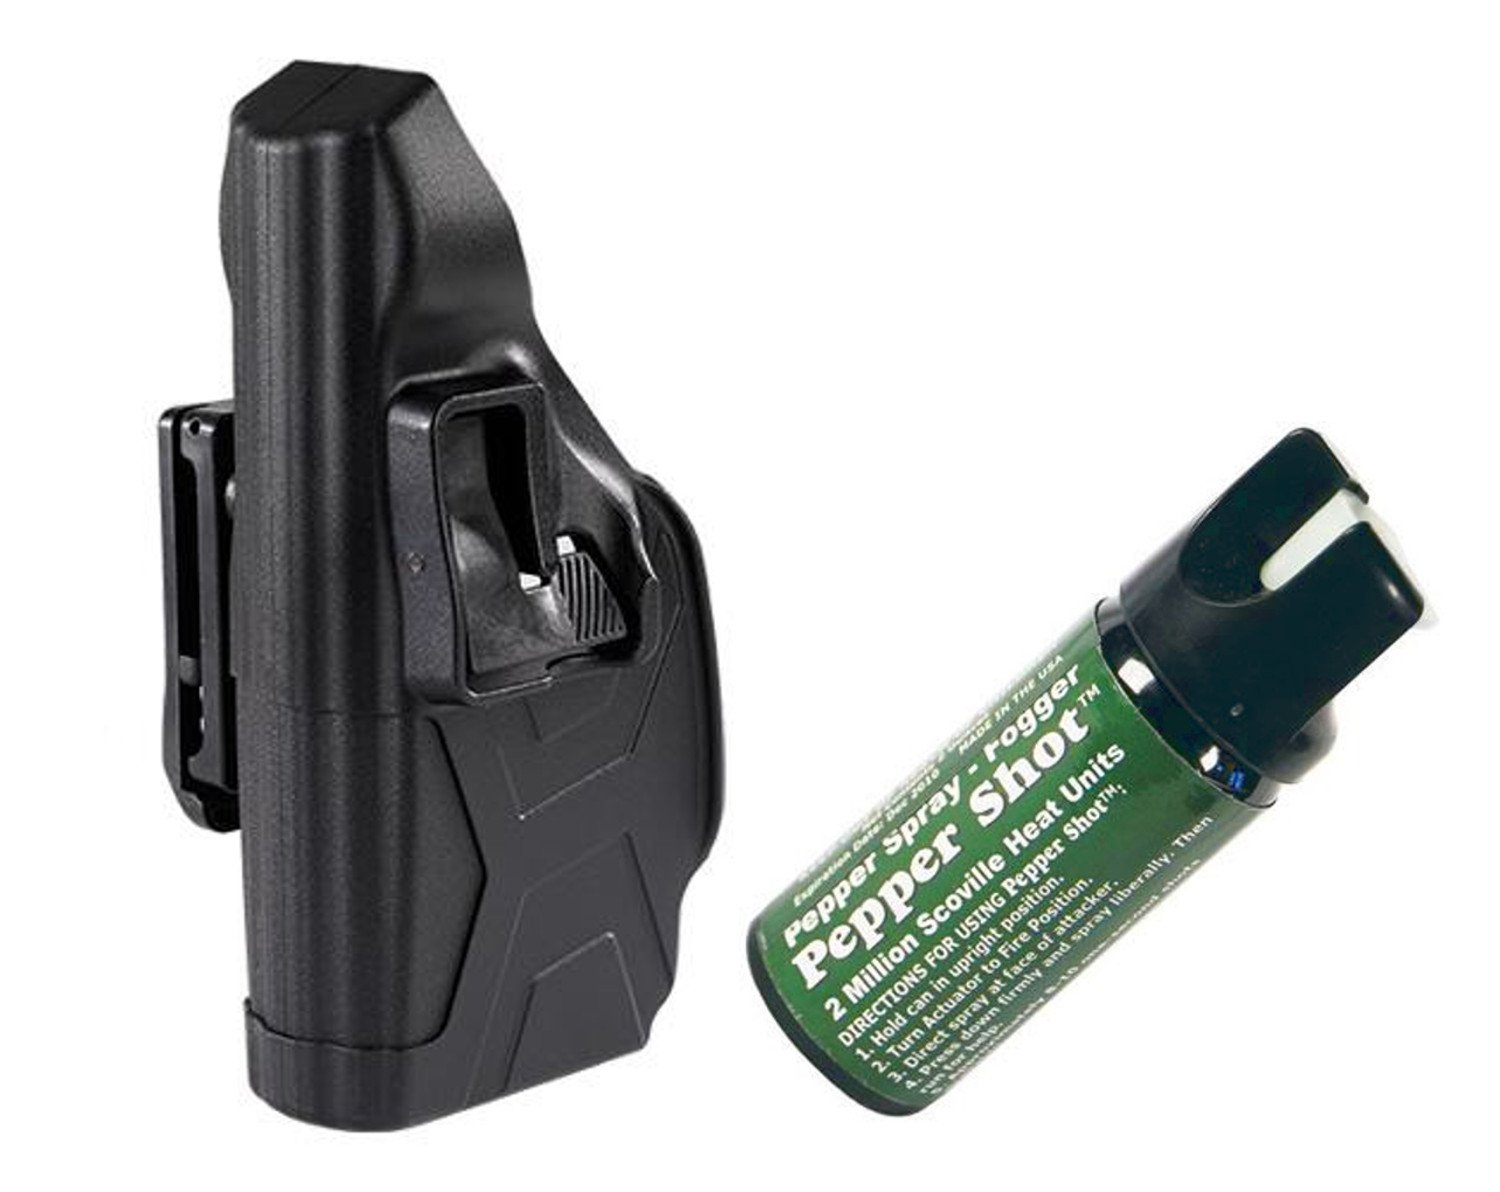 Taser X2 Defender Blackhawk Right Hand Holster & 1 Pepper Shot 2 oz Pepper Spray Fogger by GiftsAndMore